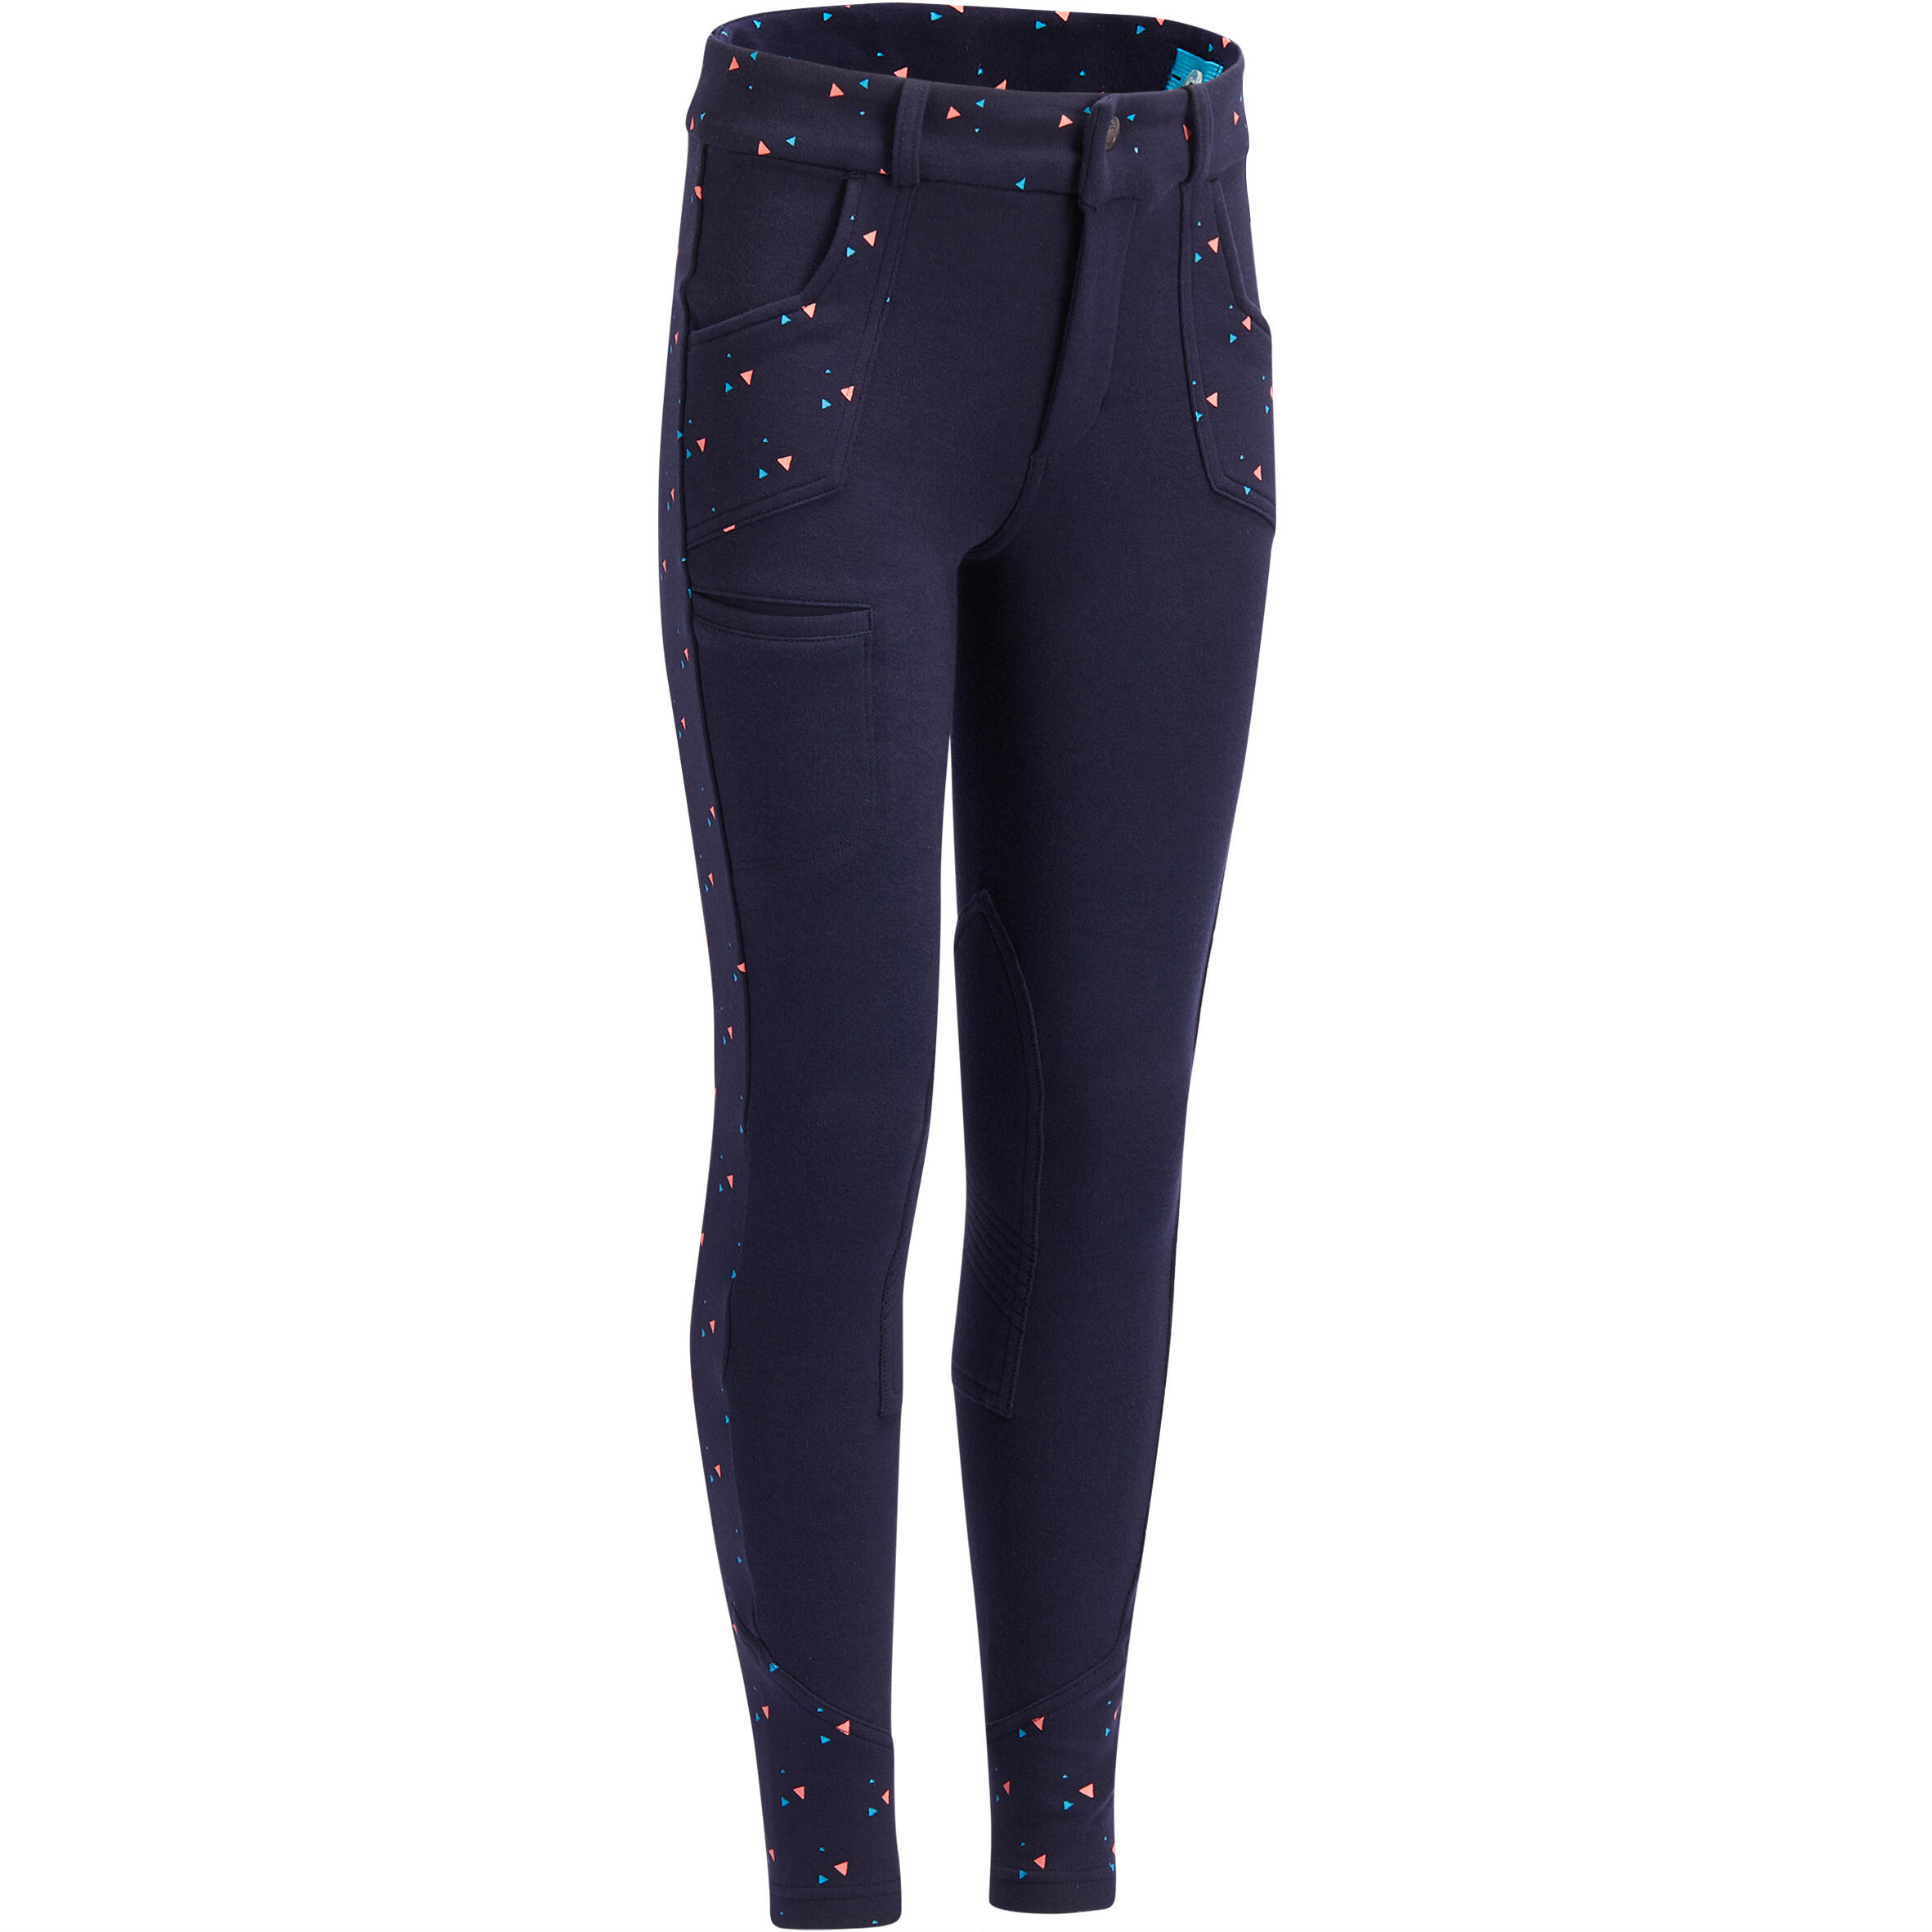 BR120 Print Girls' Horse Riding Jodhpurs - Navy/Pink Dots